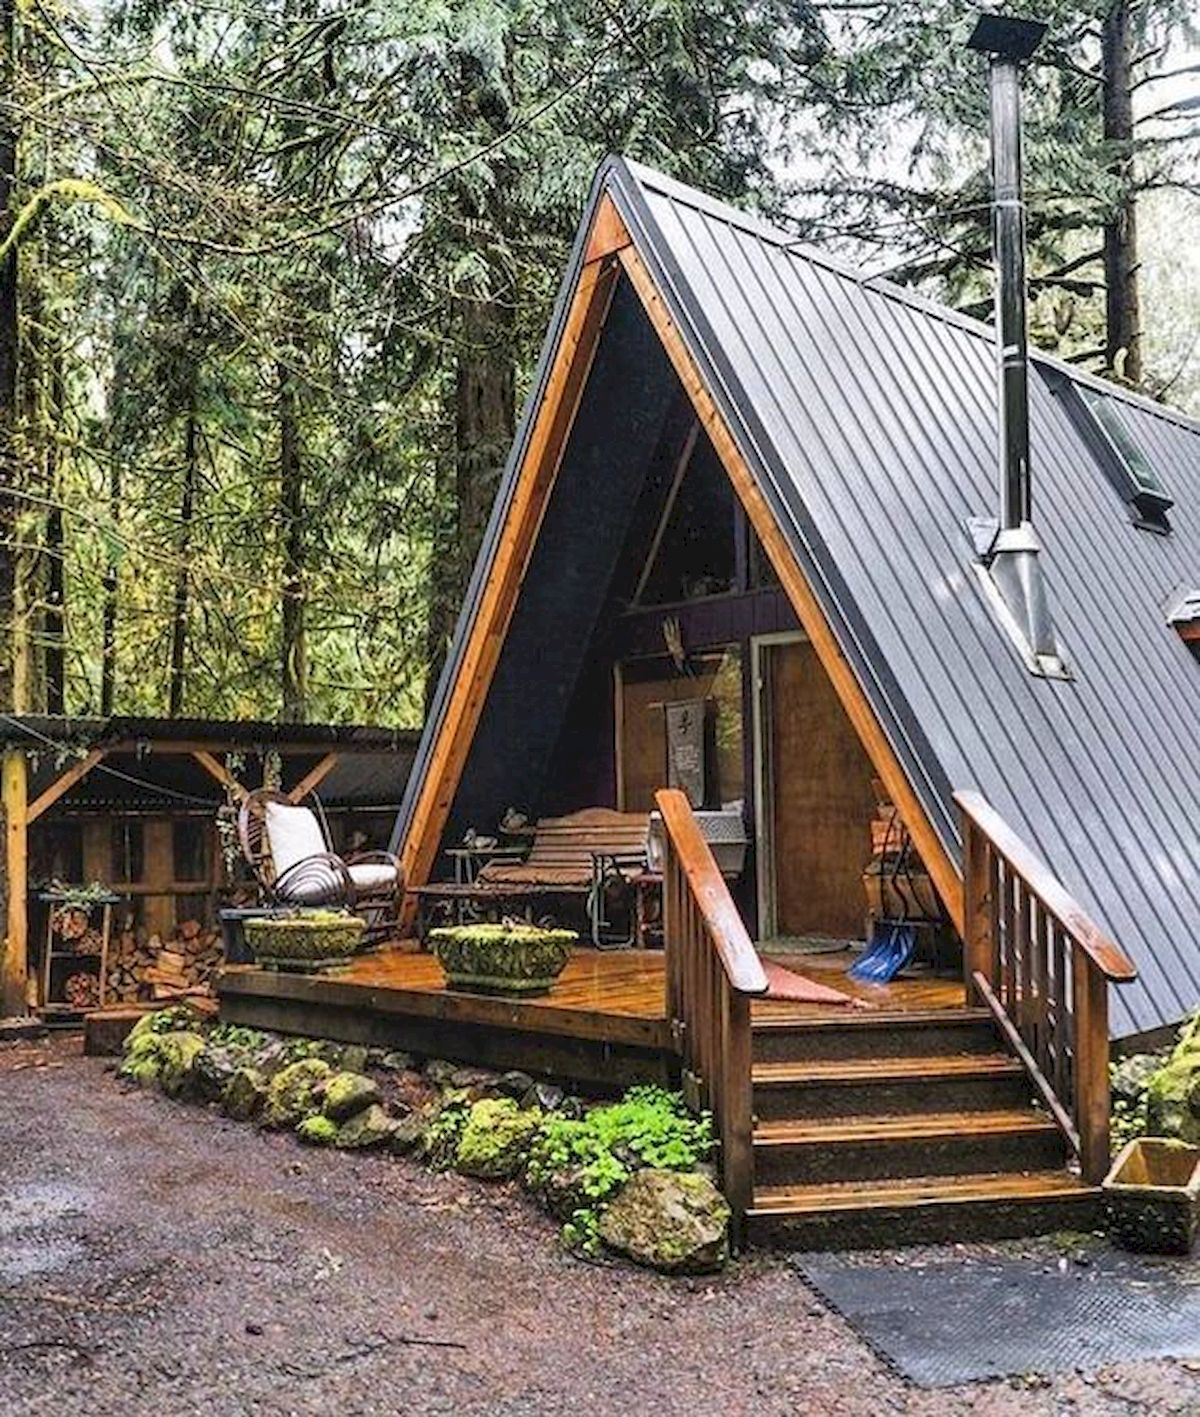 Pin By Jason Steed On Ideas De Jardines Building A Tiny House Small Log Cabin Log Cabin Homes